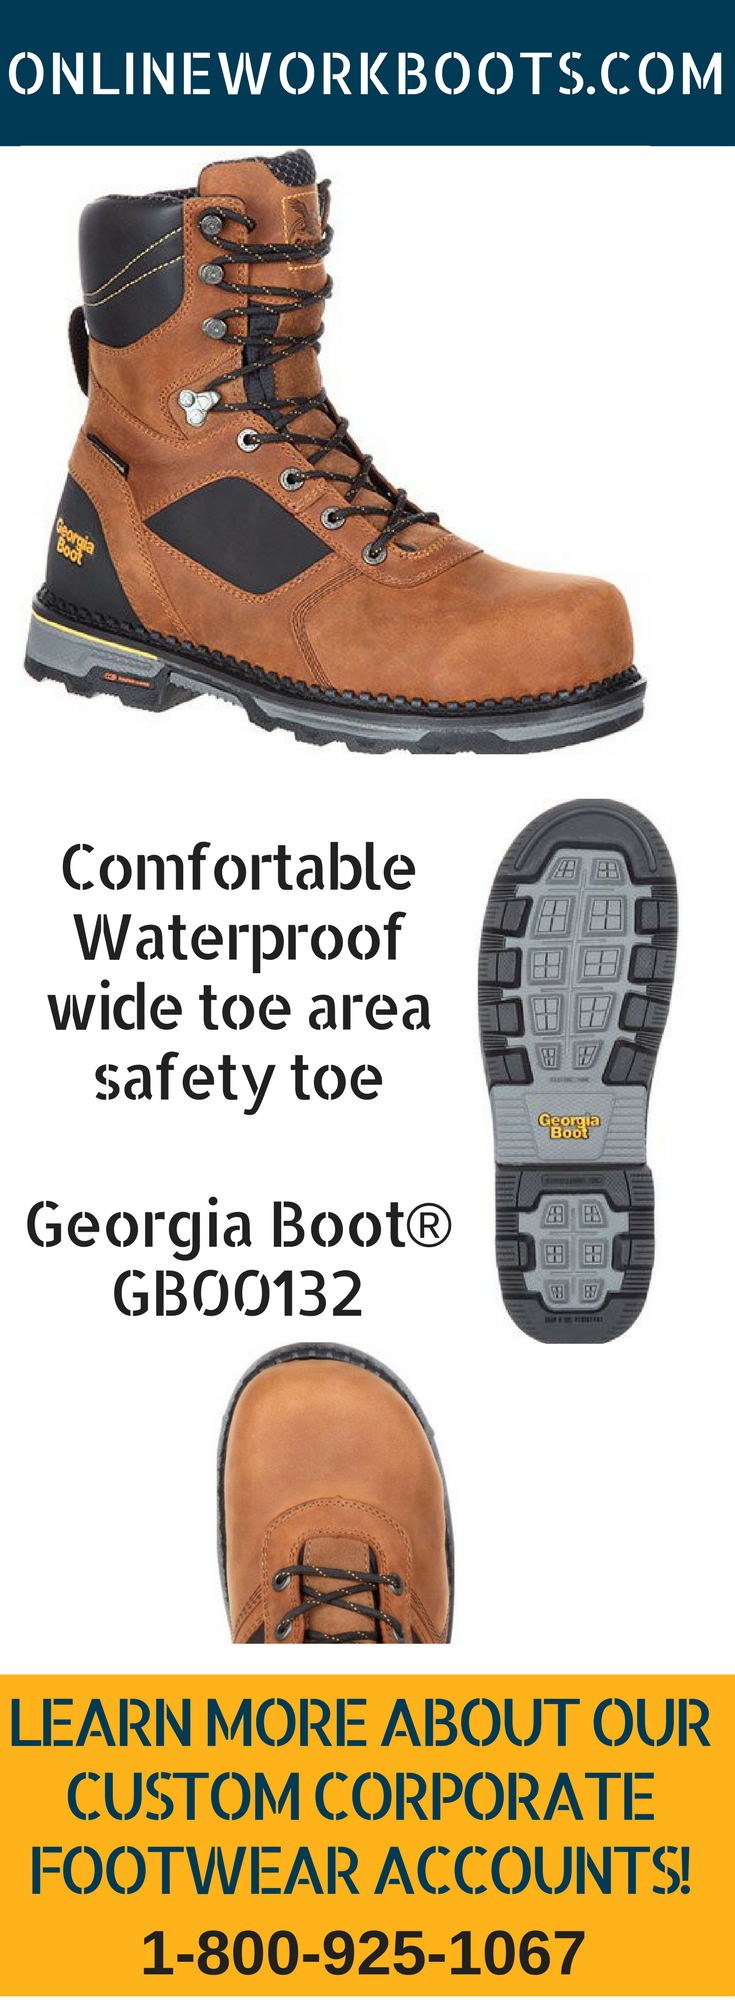 133d90dcc30 Georgia Boot GB00132 HD Composite Toe Waterproof 8